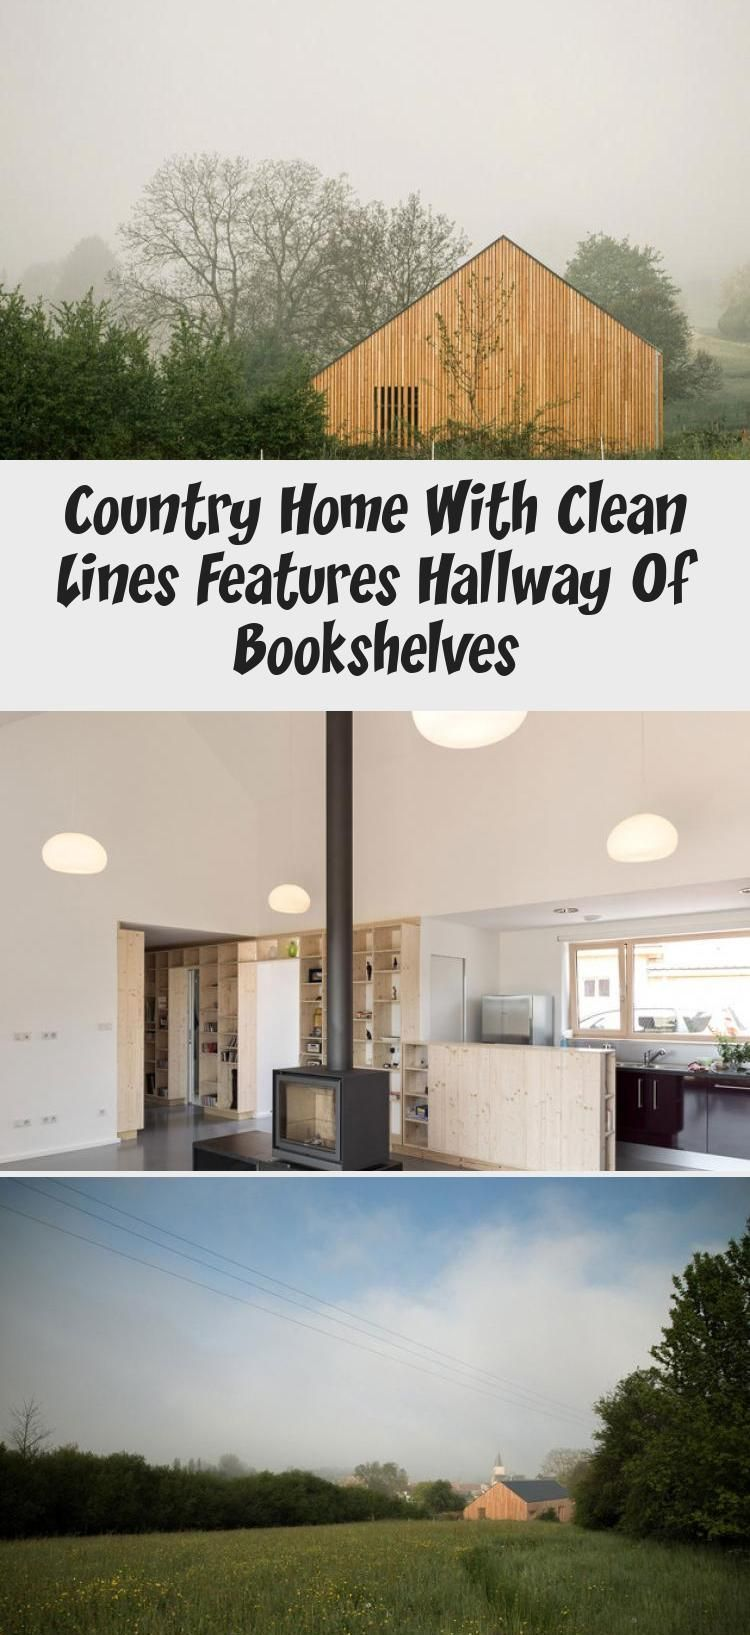 Country Home With Clean Lines Features Hallway Of Bookshelves #hallwaybookshelves Country Home with Clean Lines features Hallway of Bookshelves #countryhomeFront #countryhomeCurtains #countryhomeMudroom #TexasHillcountryhome #Classiccountryhome #hallwaybookshelves